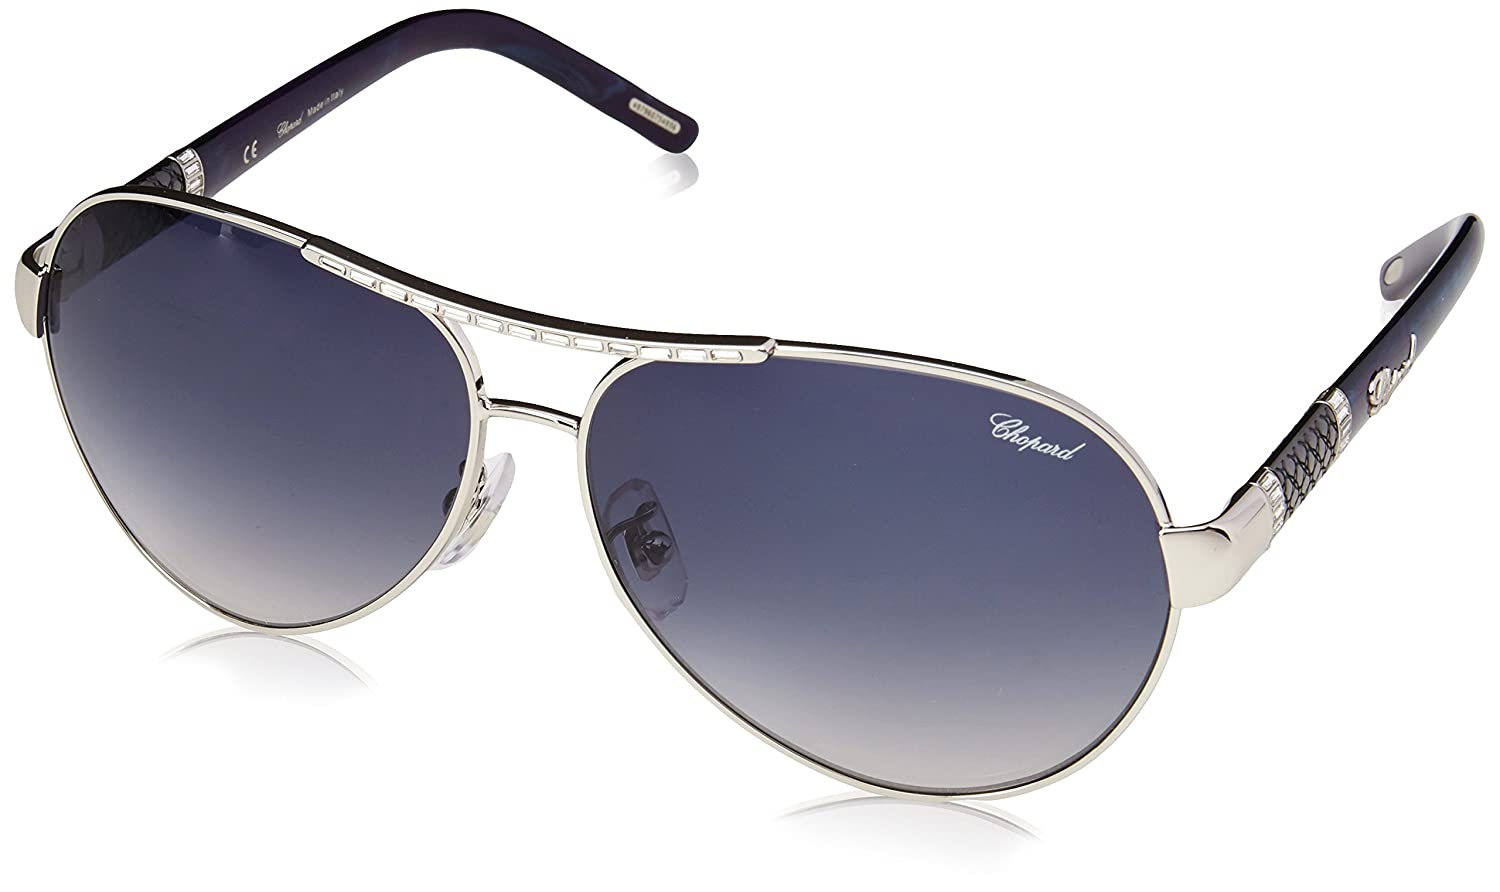 5af270a6ba52c Amazon.com  Chopard Sunglasses SCHA59 0579 Palladium Grey Blue Gradient   Clothing